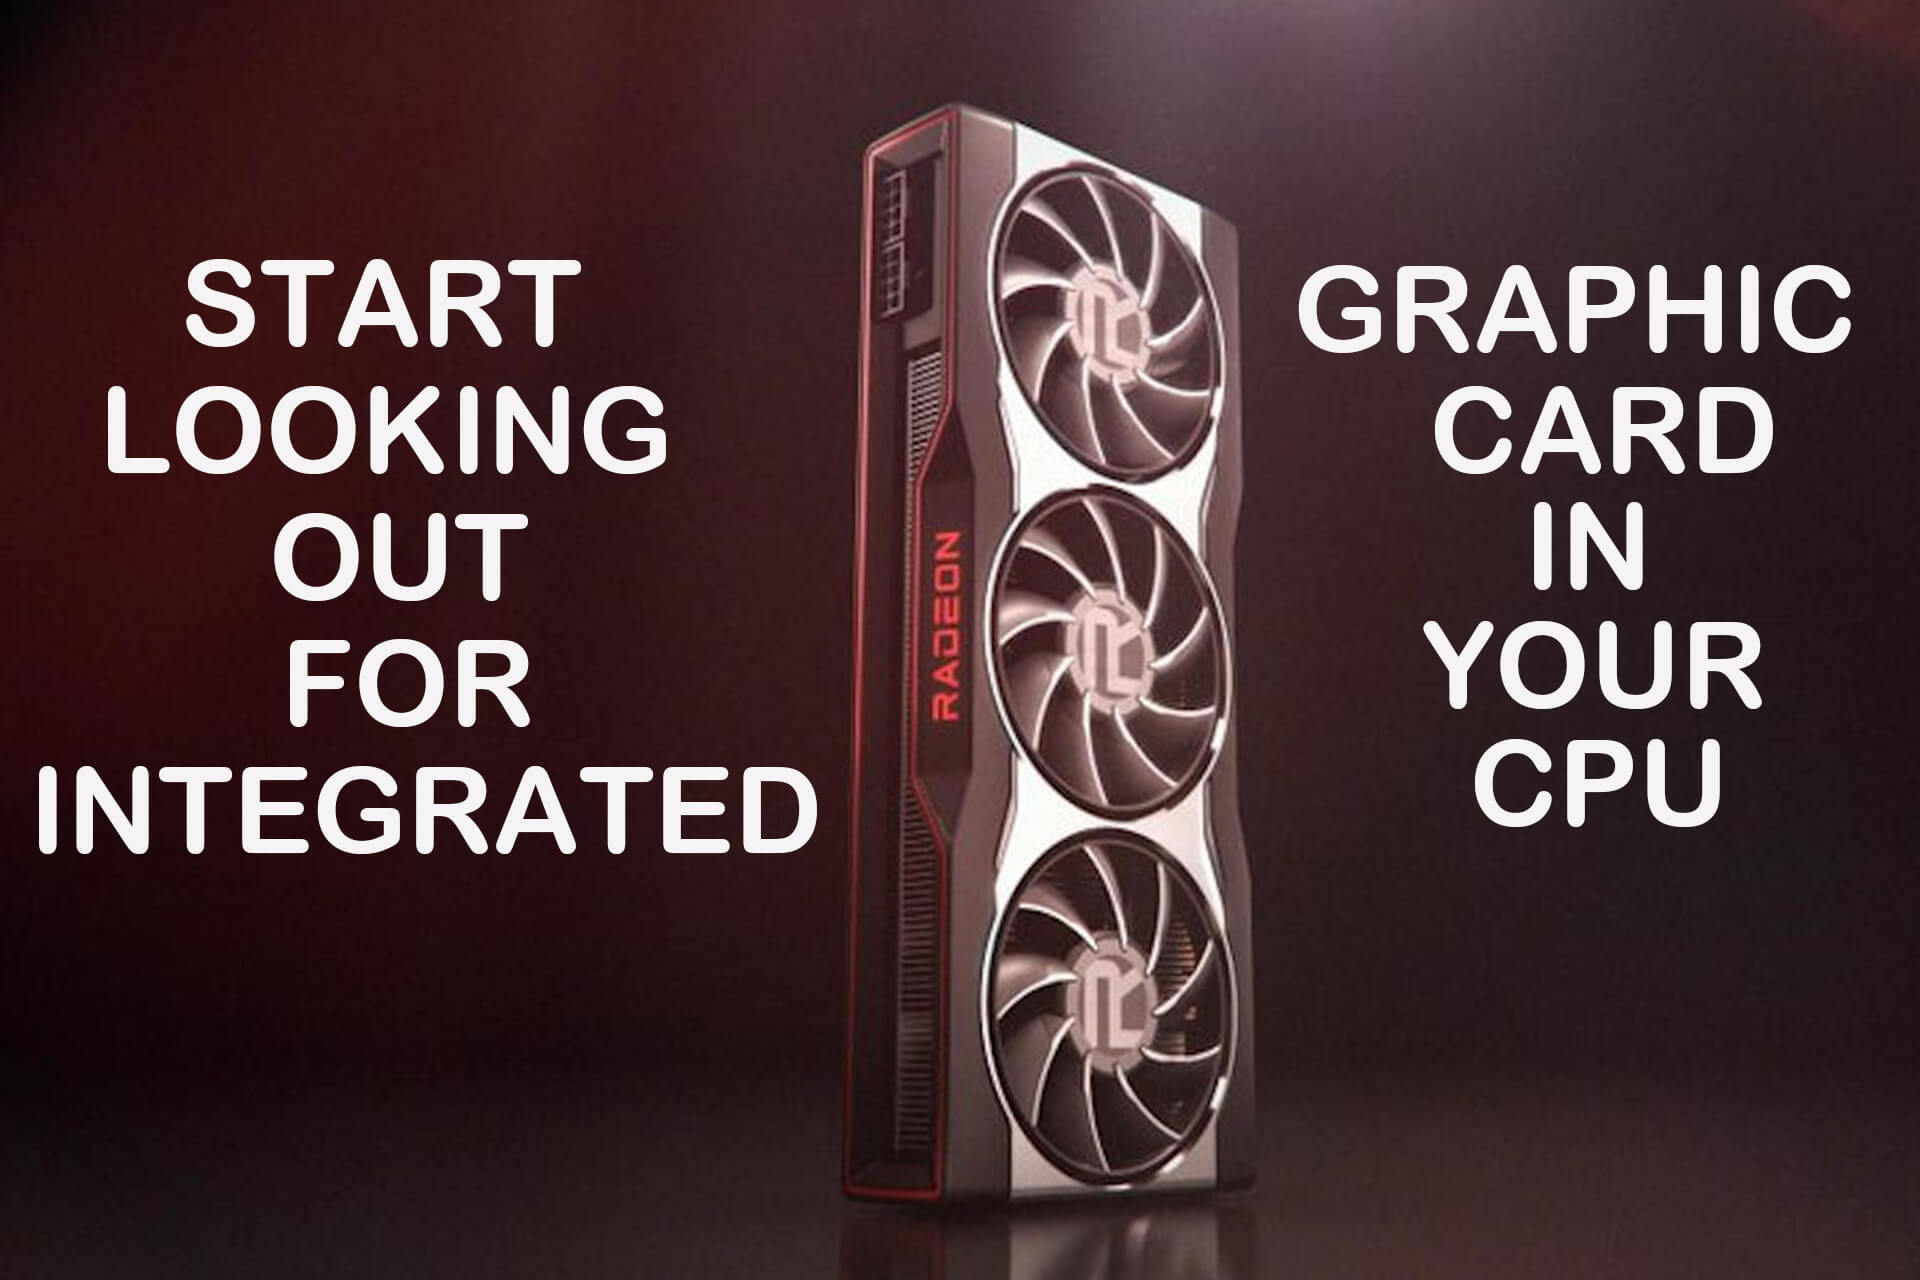 Look for integrated graphic card in your CPU